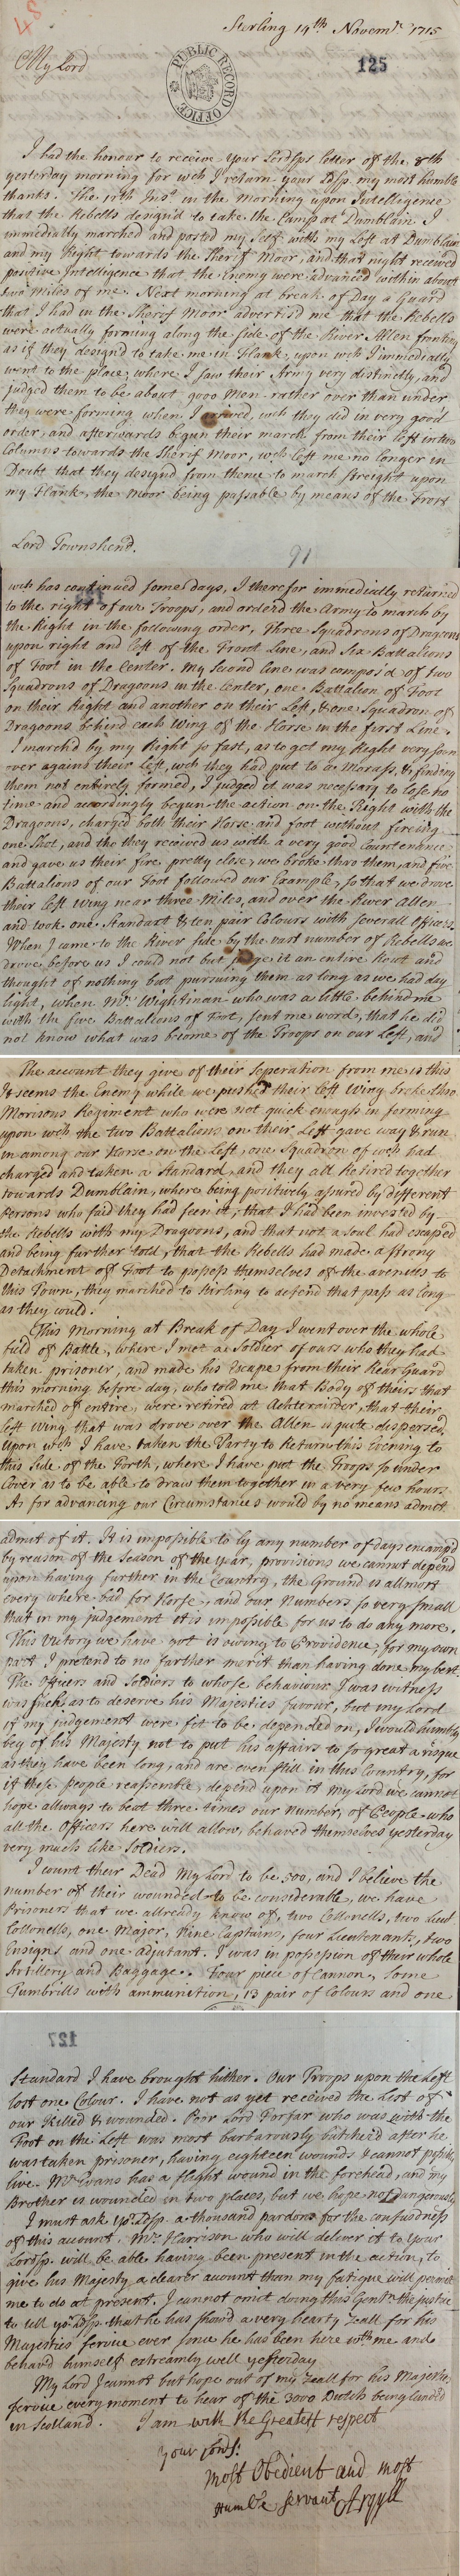 Letter from Lord Argyll to Lord Townshend, Secretary of State, 14 November 1715 (SP 54/10/48)